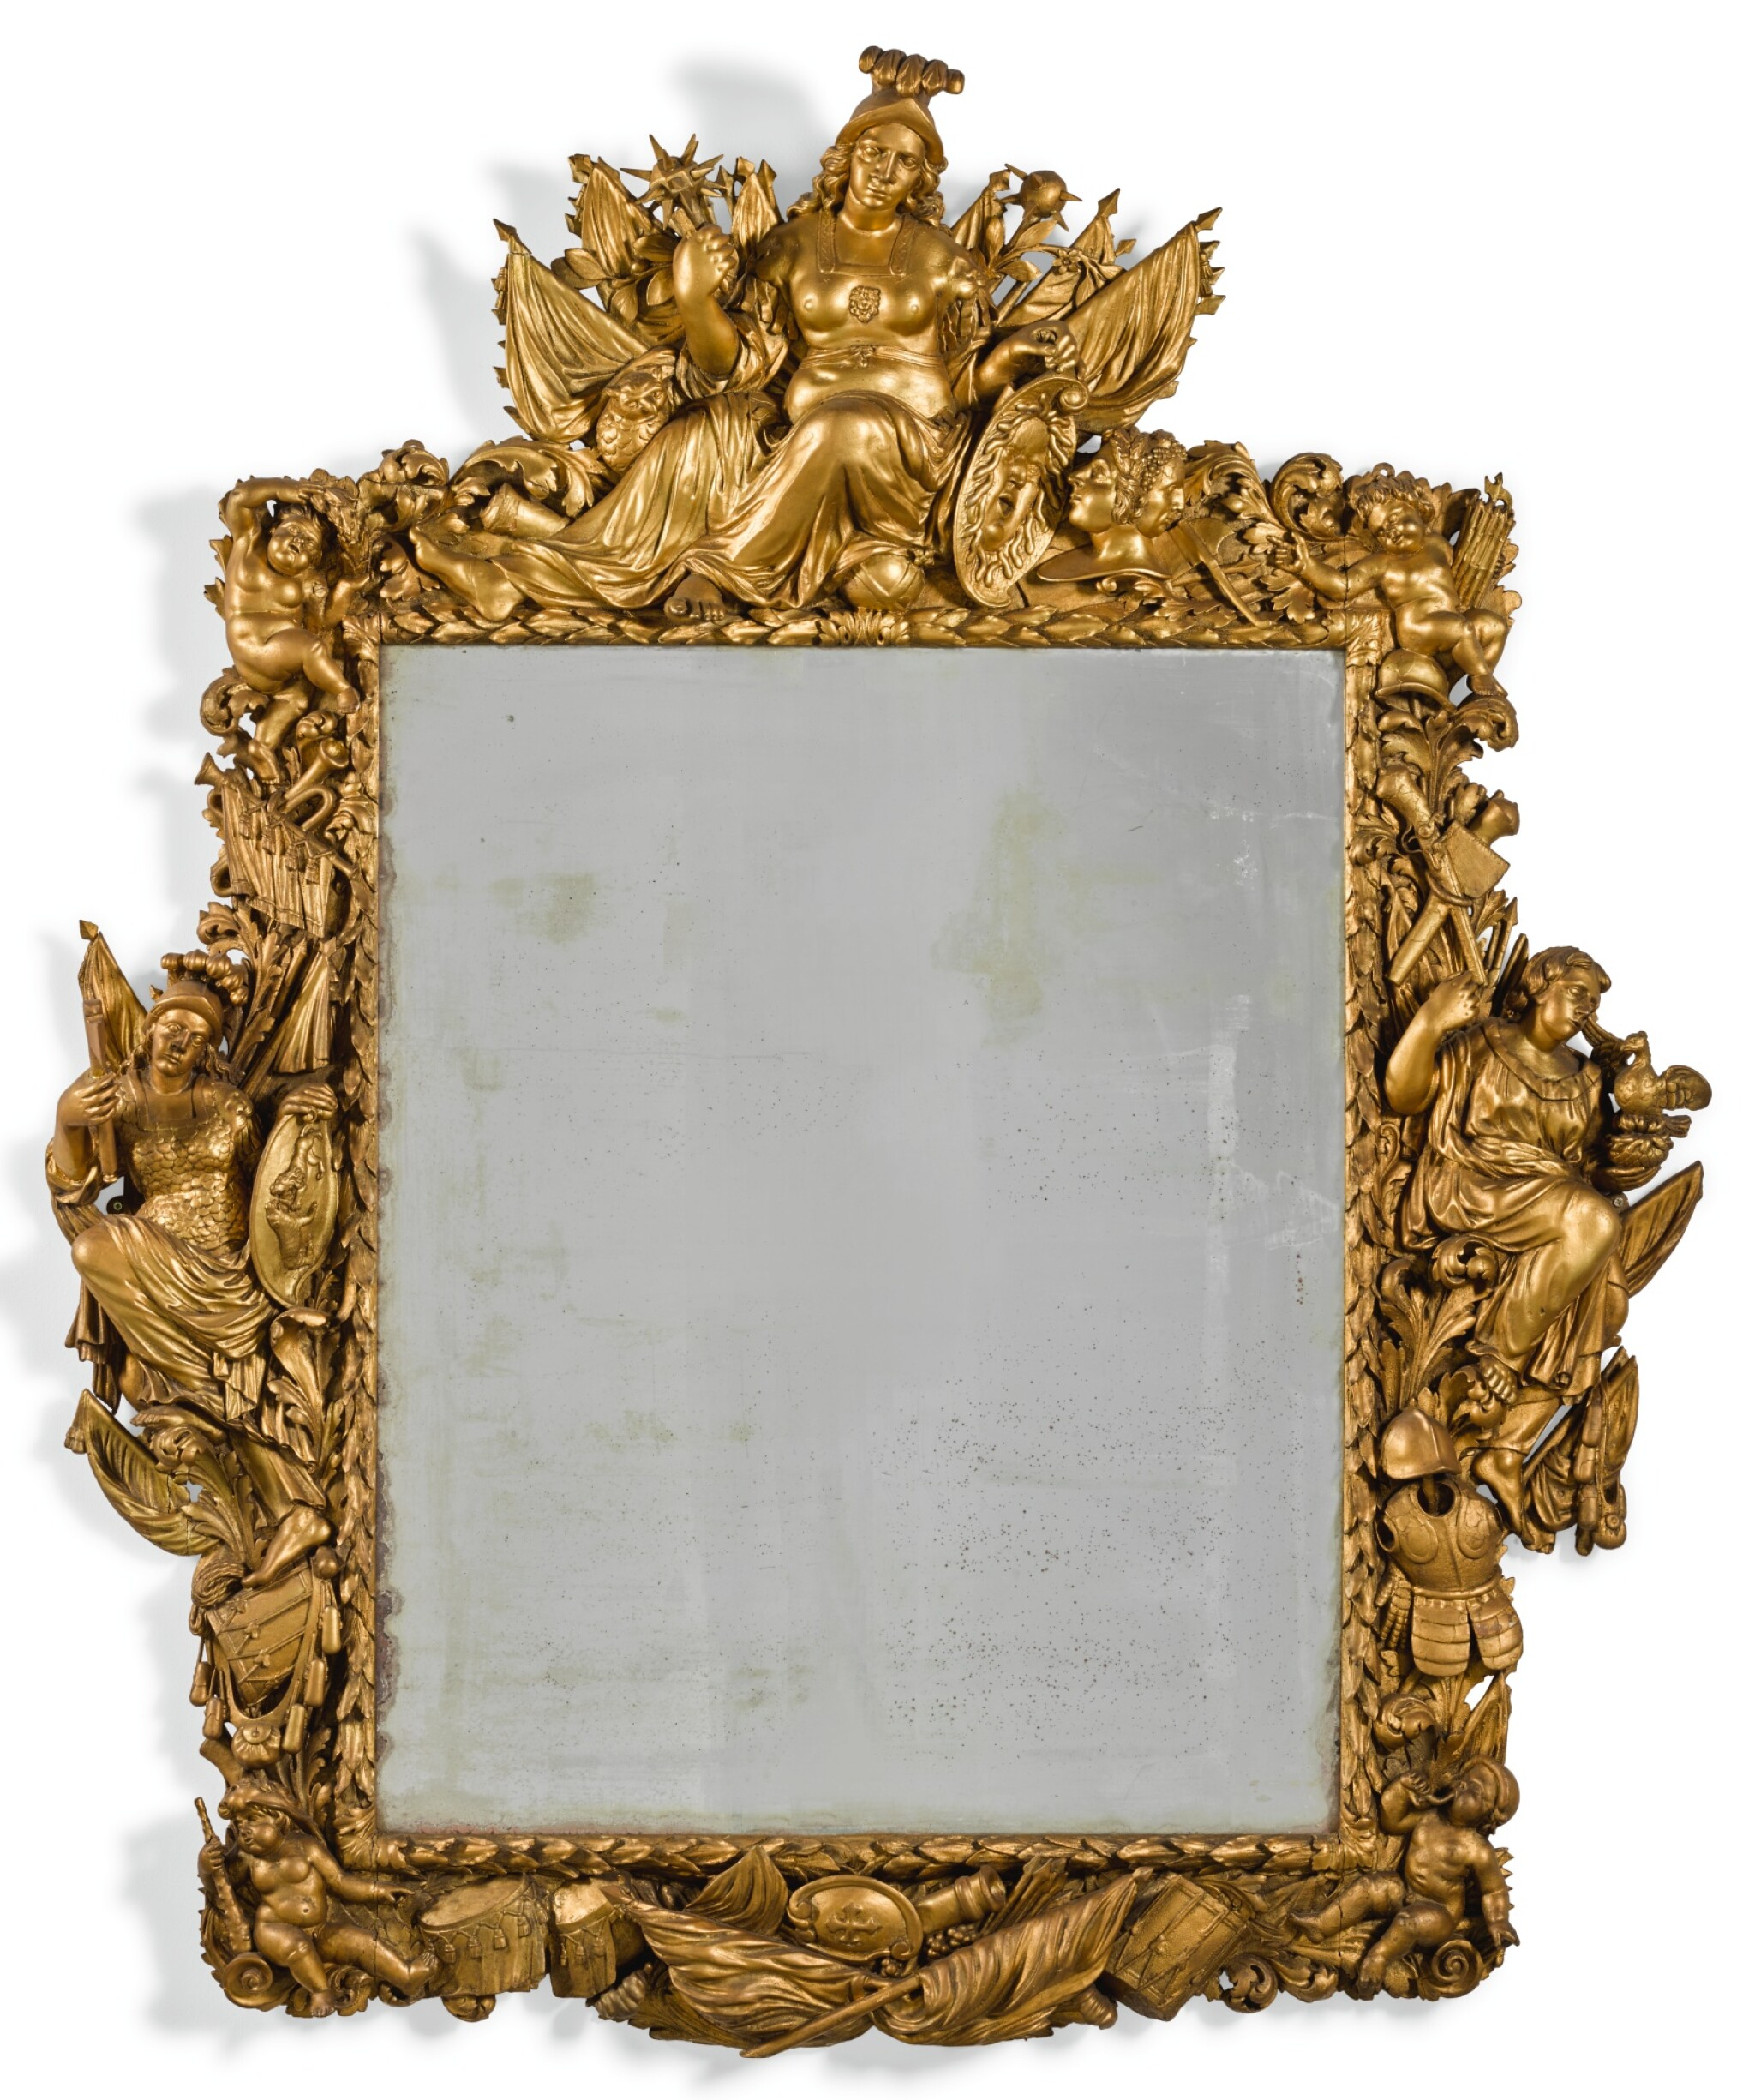 View full screen - View 1 of Lot 115. A LARGE FLEMISH CARVED GILTWOOD FRAME LATE 17TH CENTURY.